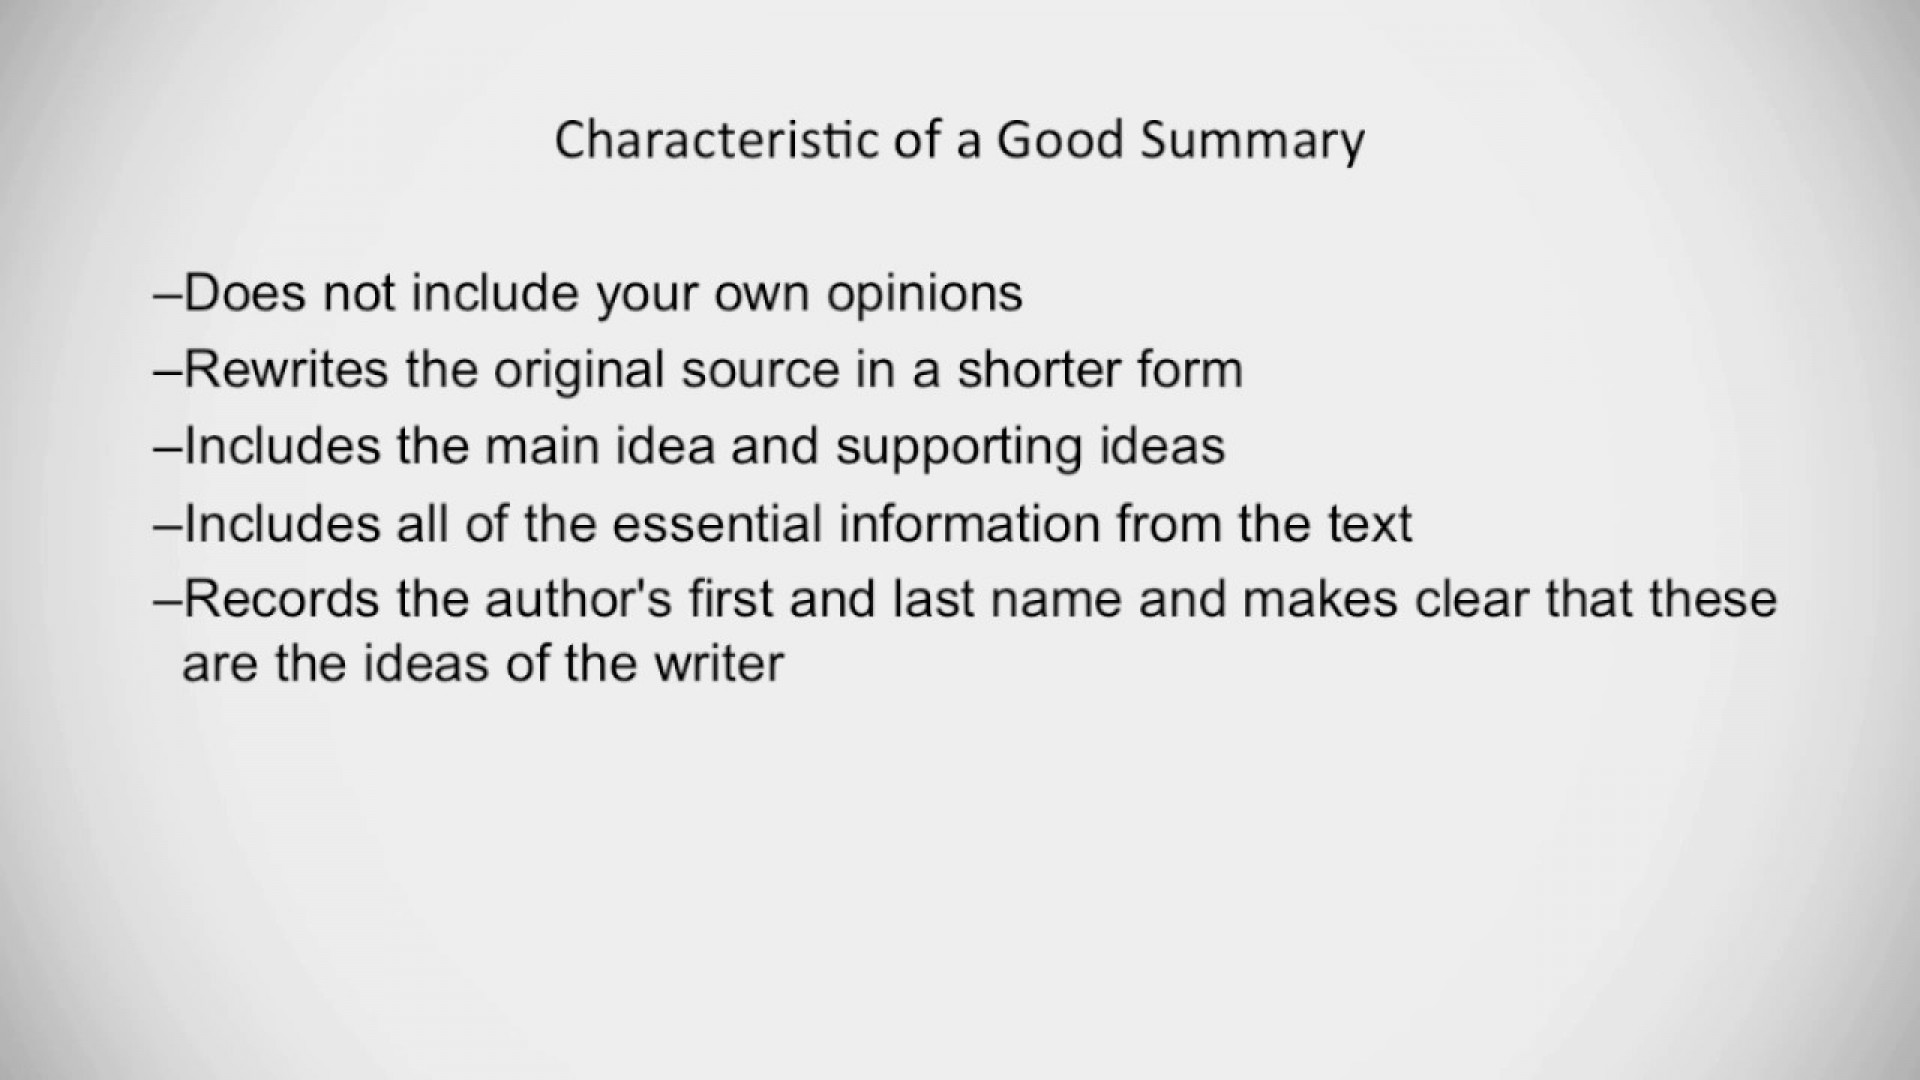 001 Essay Example Maxresdefault Summary Archaicawful Response Conclusion Assignment Thesis 1920